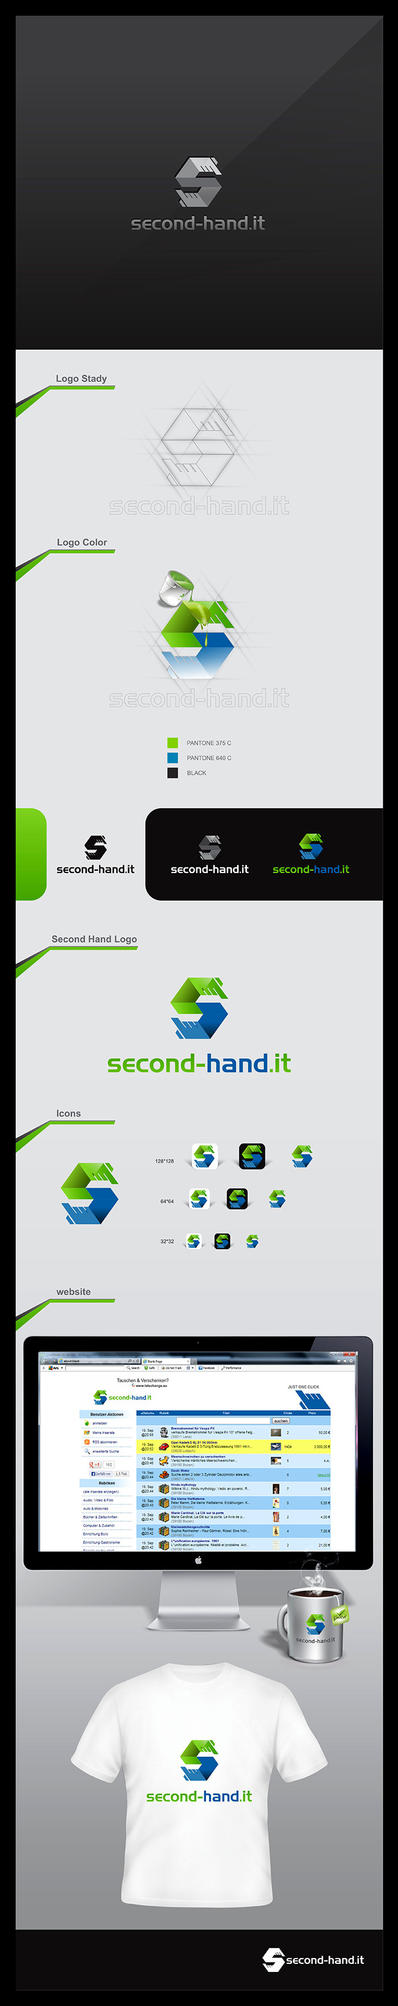 second hand logo by Enginems